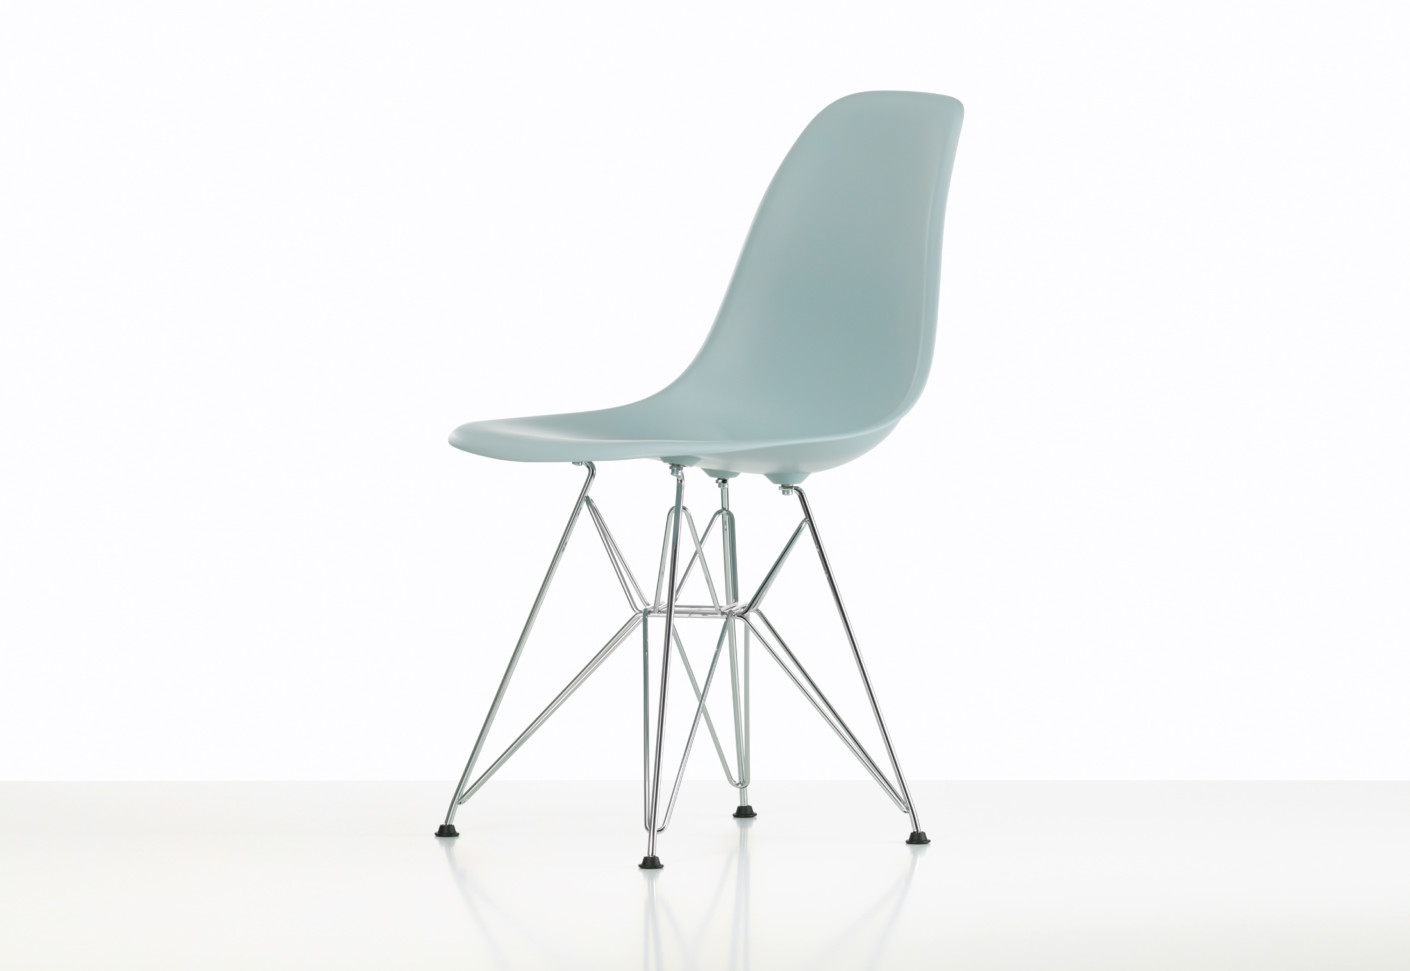 eames plastic side chair dsr by vitra stylepark. Black Bedroom Furniture Sets. Home Design Ideas